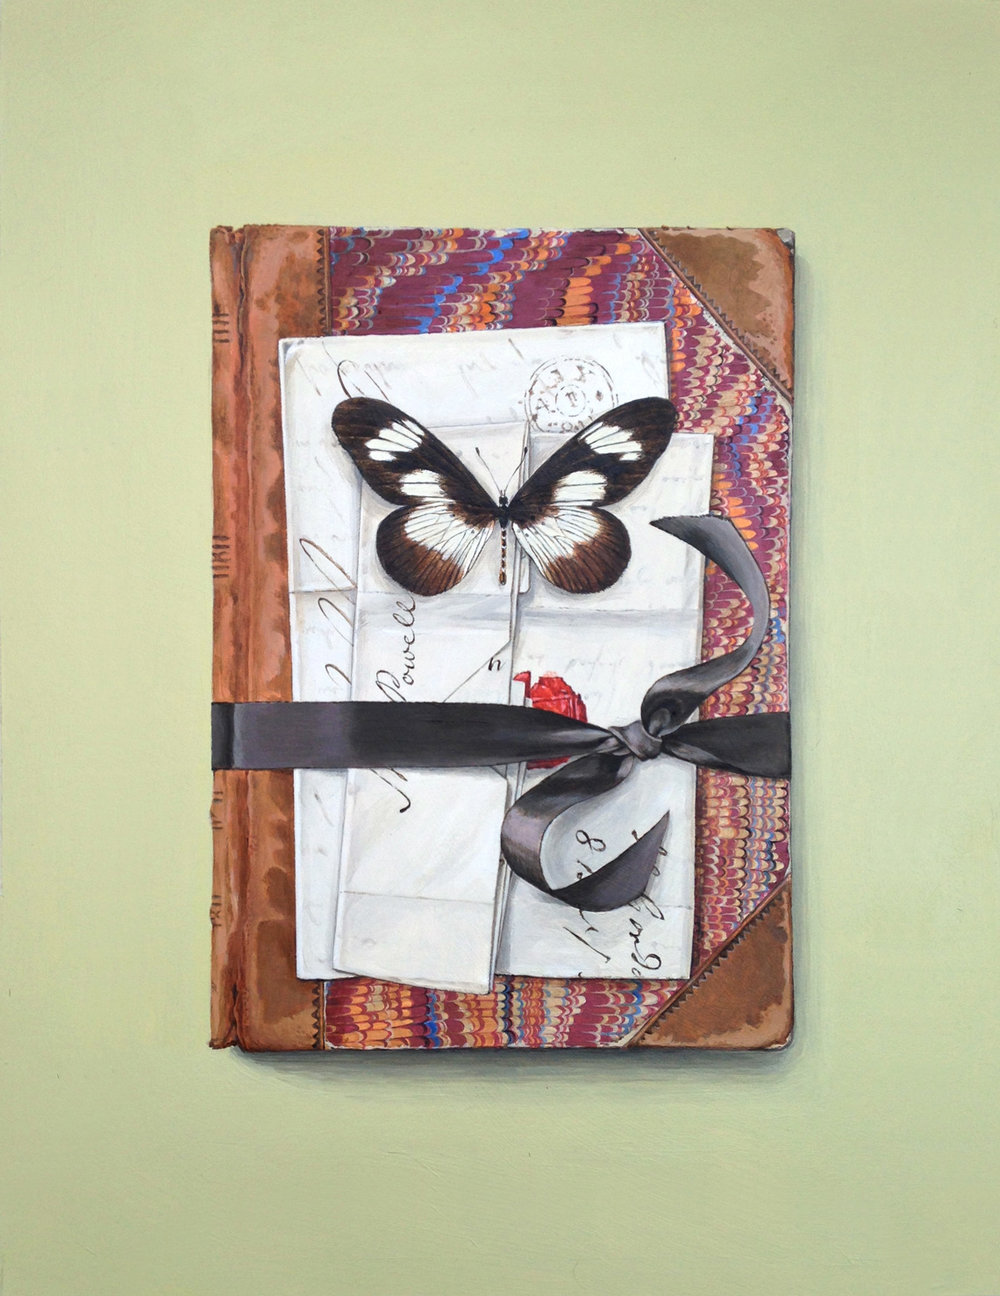 Mrs Powell's book with butterfly